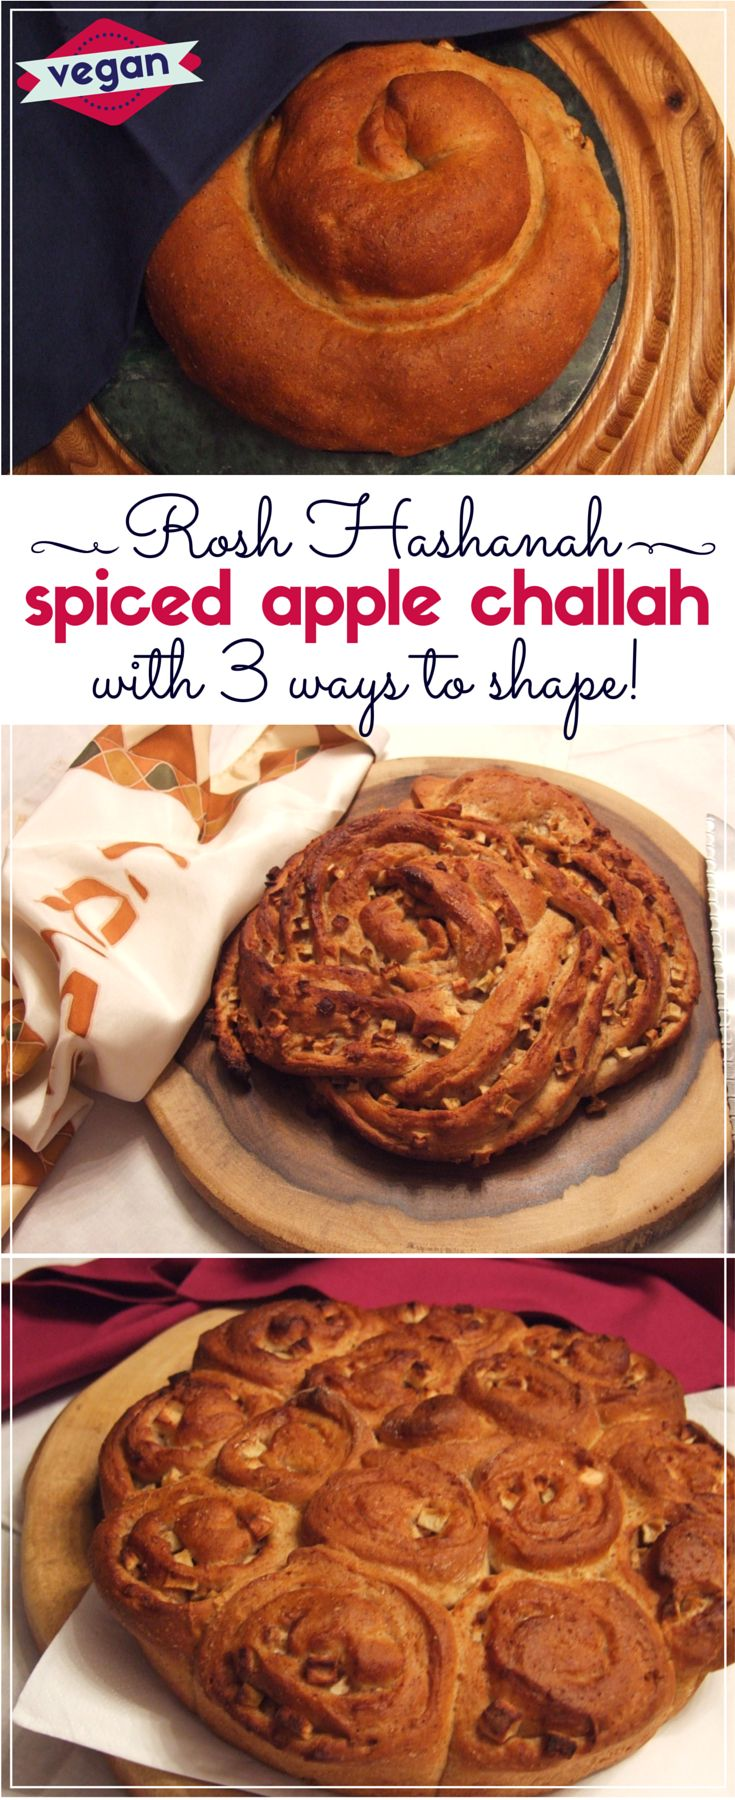 Tasty vegan challah dough is wrapped around delicious spiced apple filling to create sensational Rosh Hashanah challah! Plus 3 beautiful ways to shape it.